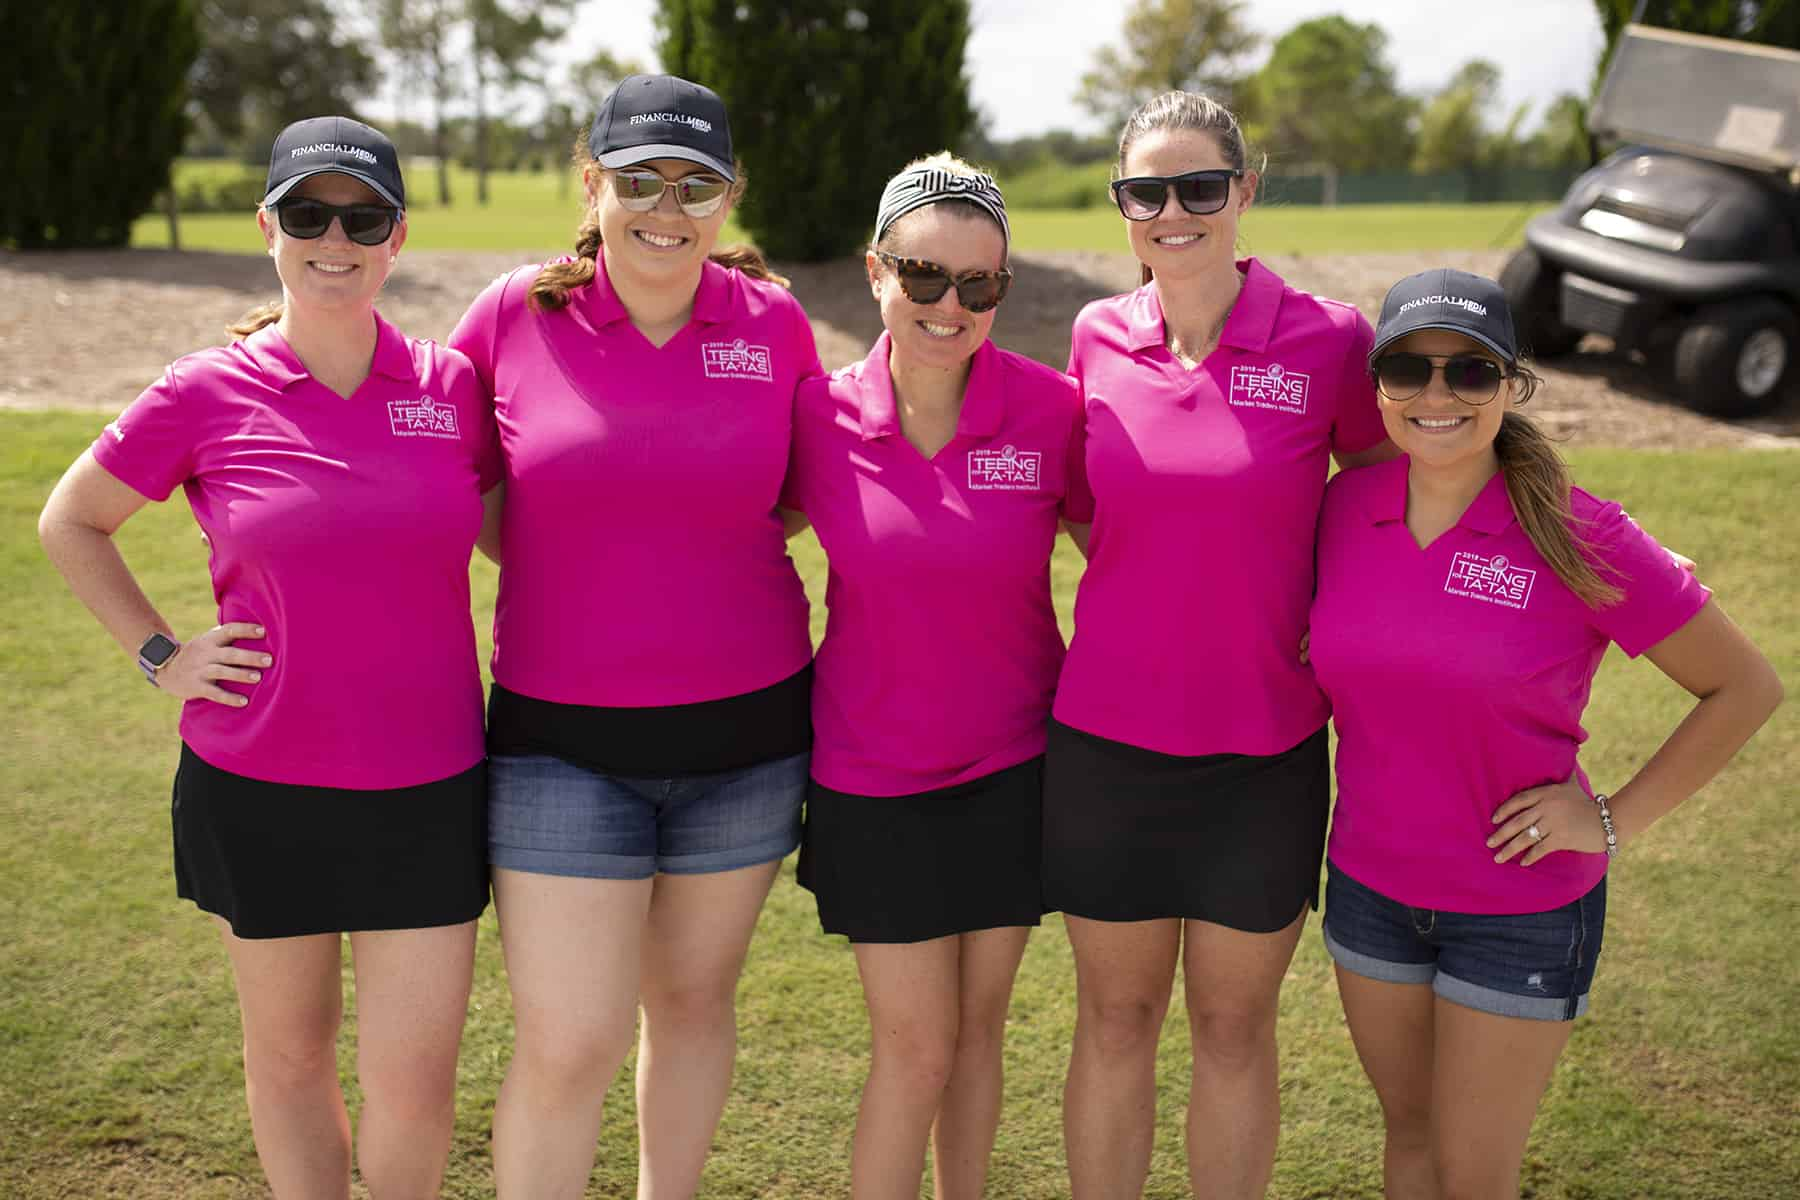 Market Traders Institute Teeing for Ta-tas fundraiser